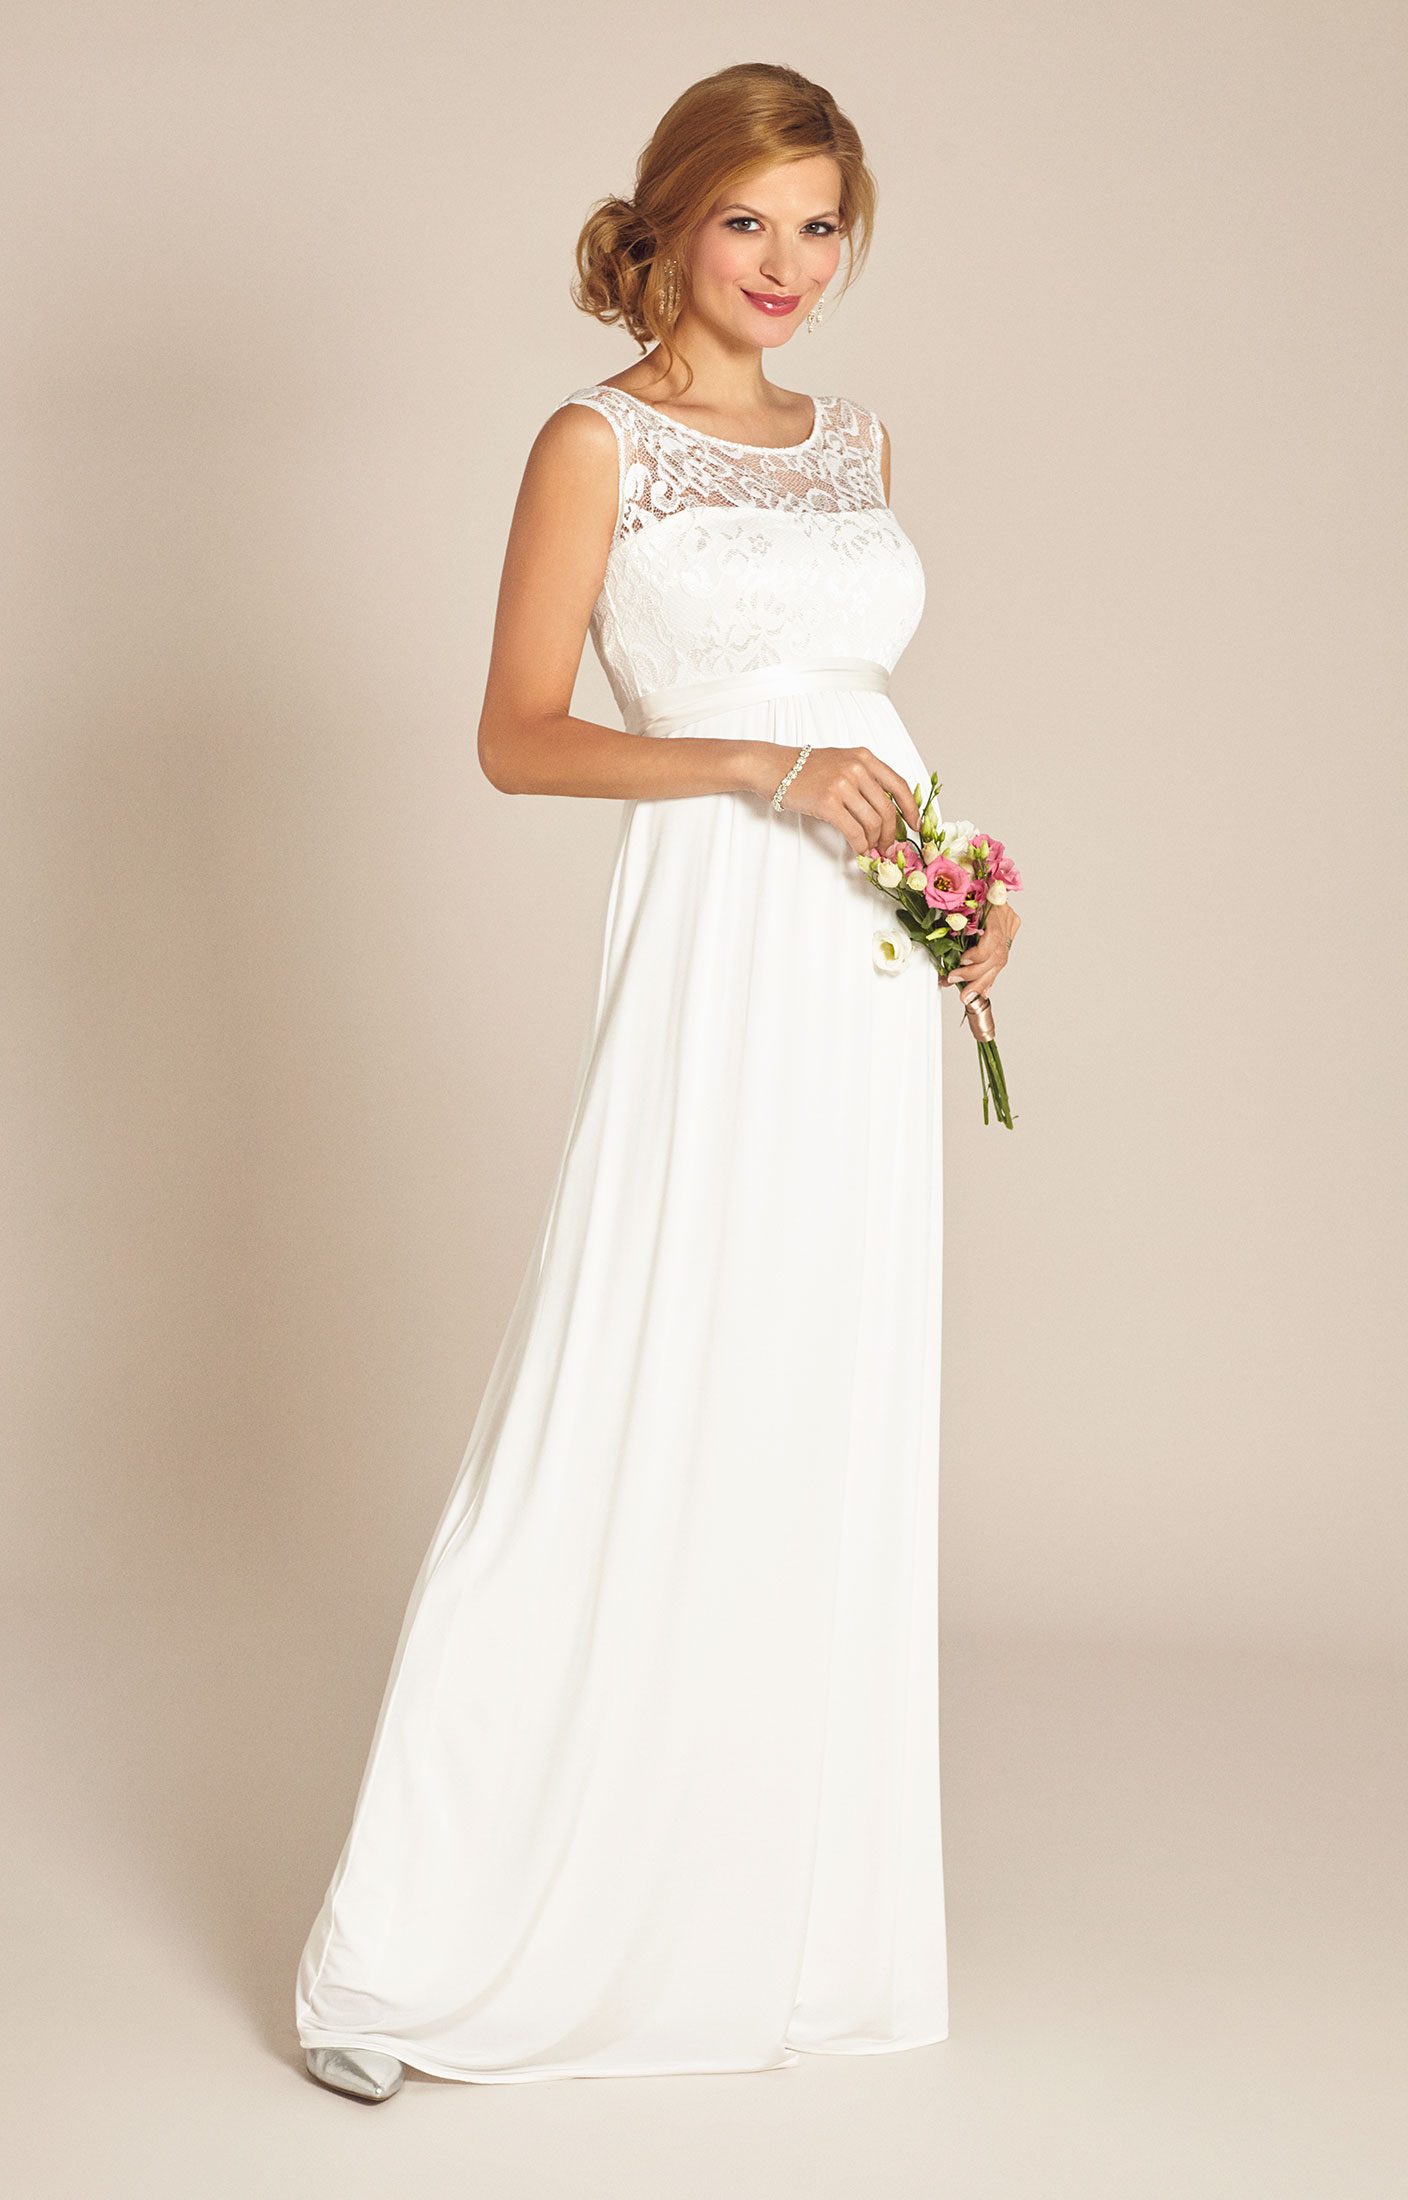 Valencia gown Ιδέες γάμου pinterest wedding wedding gowns and